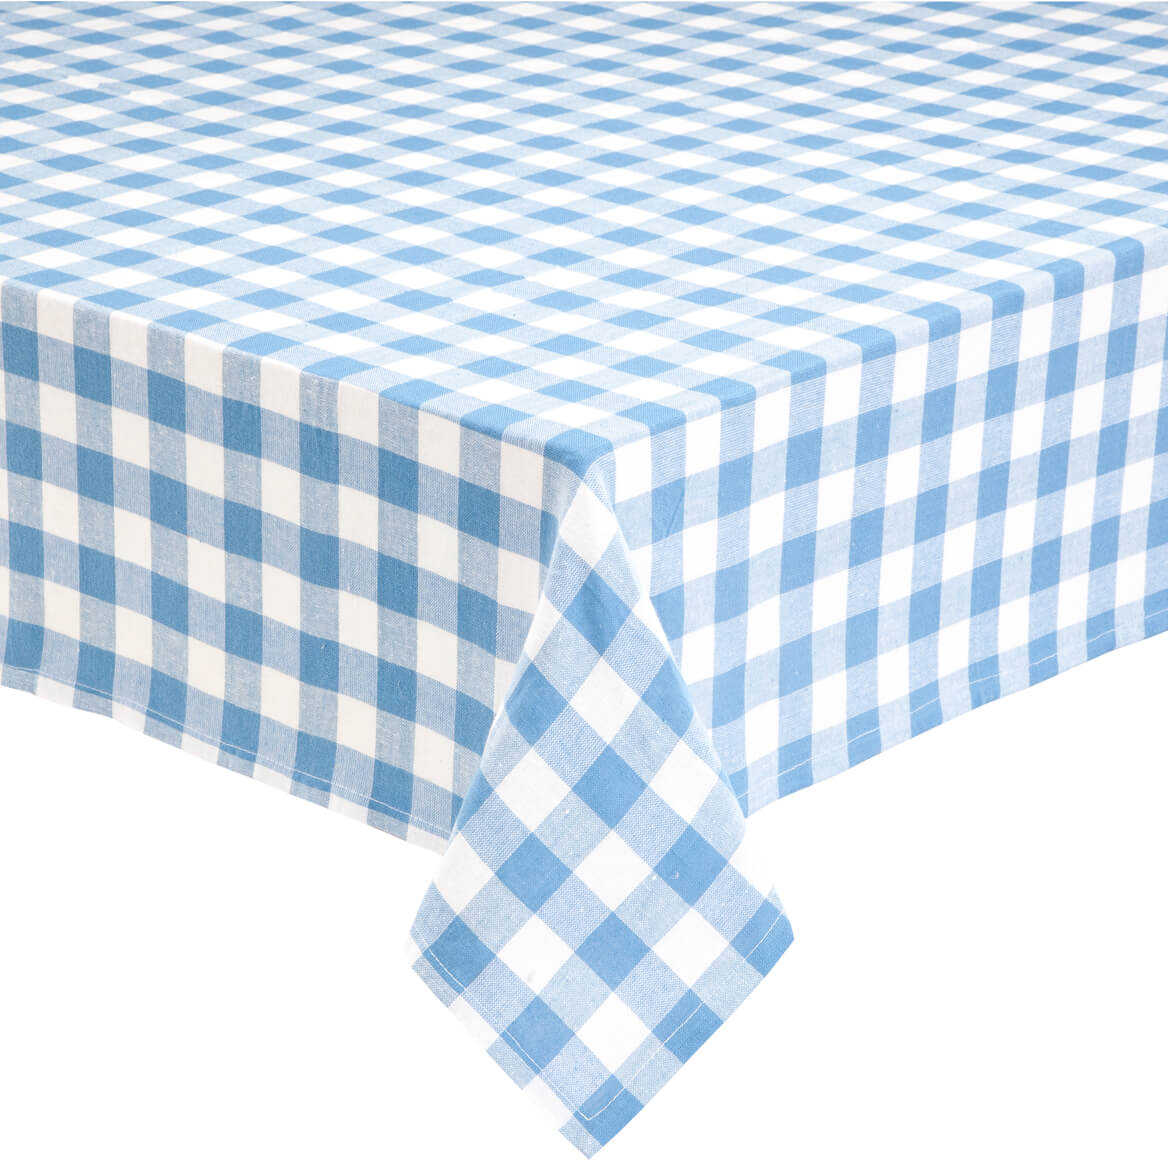 Lovely 100% Cotton Gingham Tablecloth